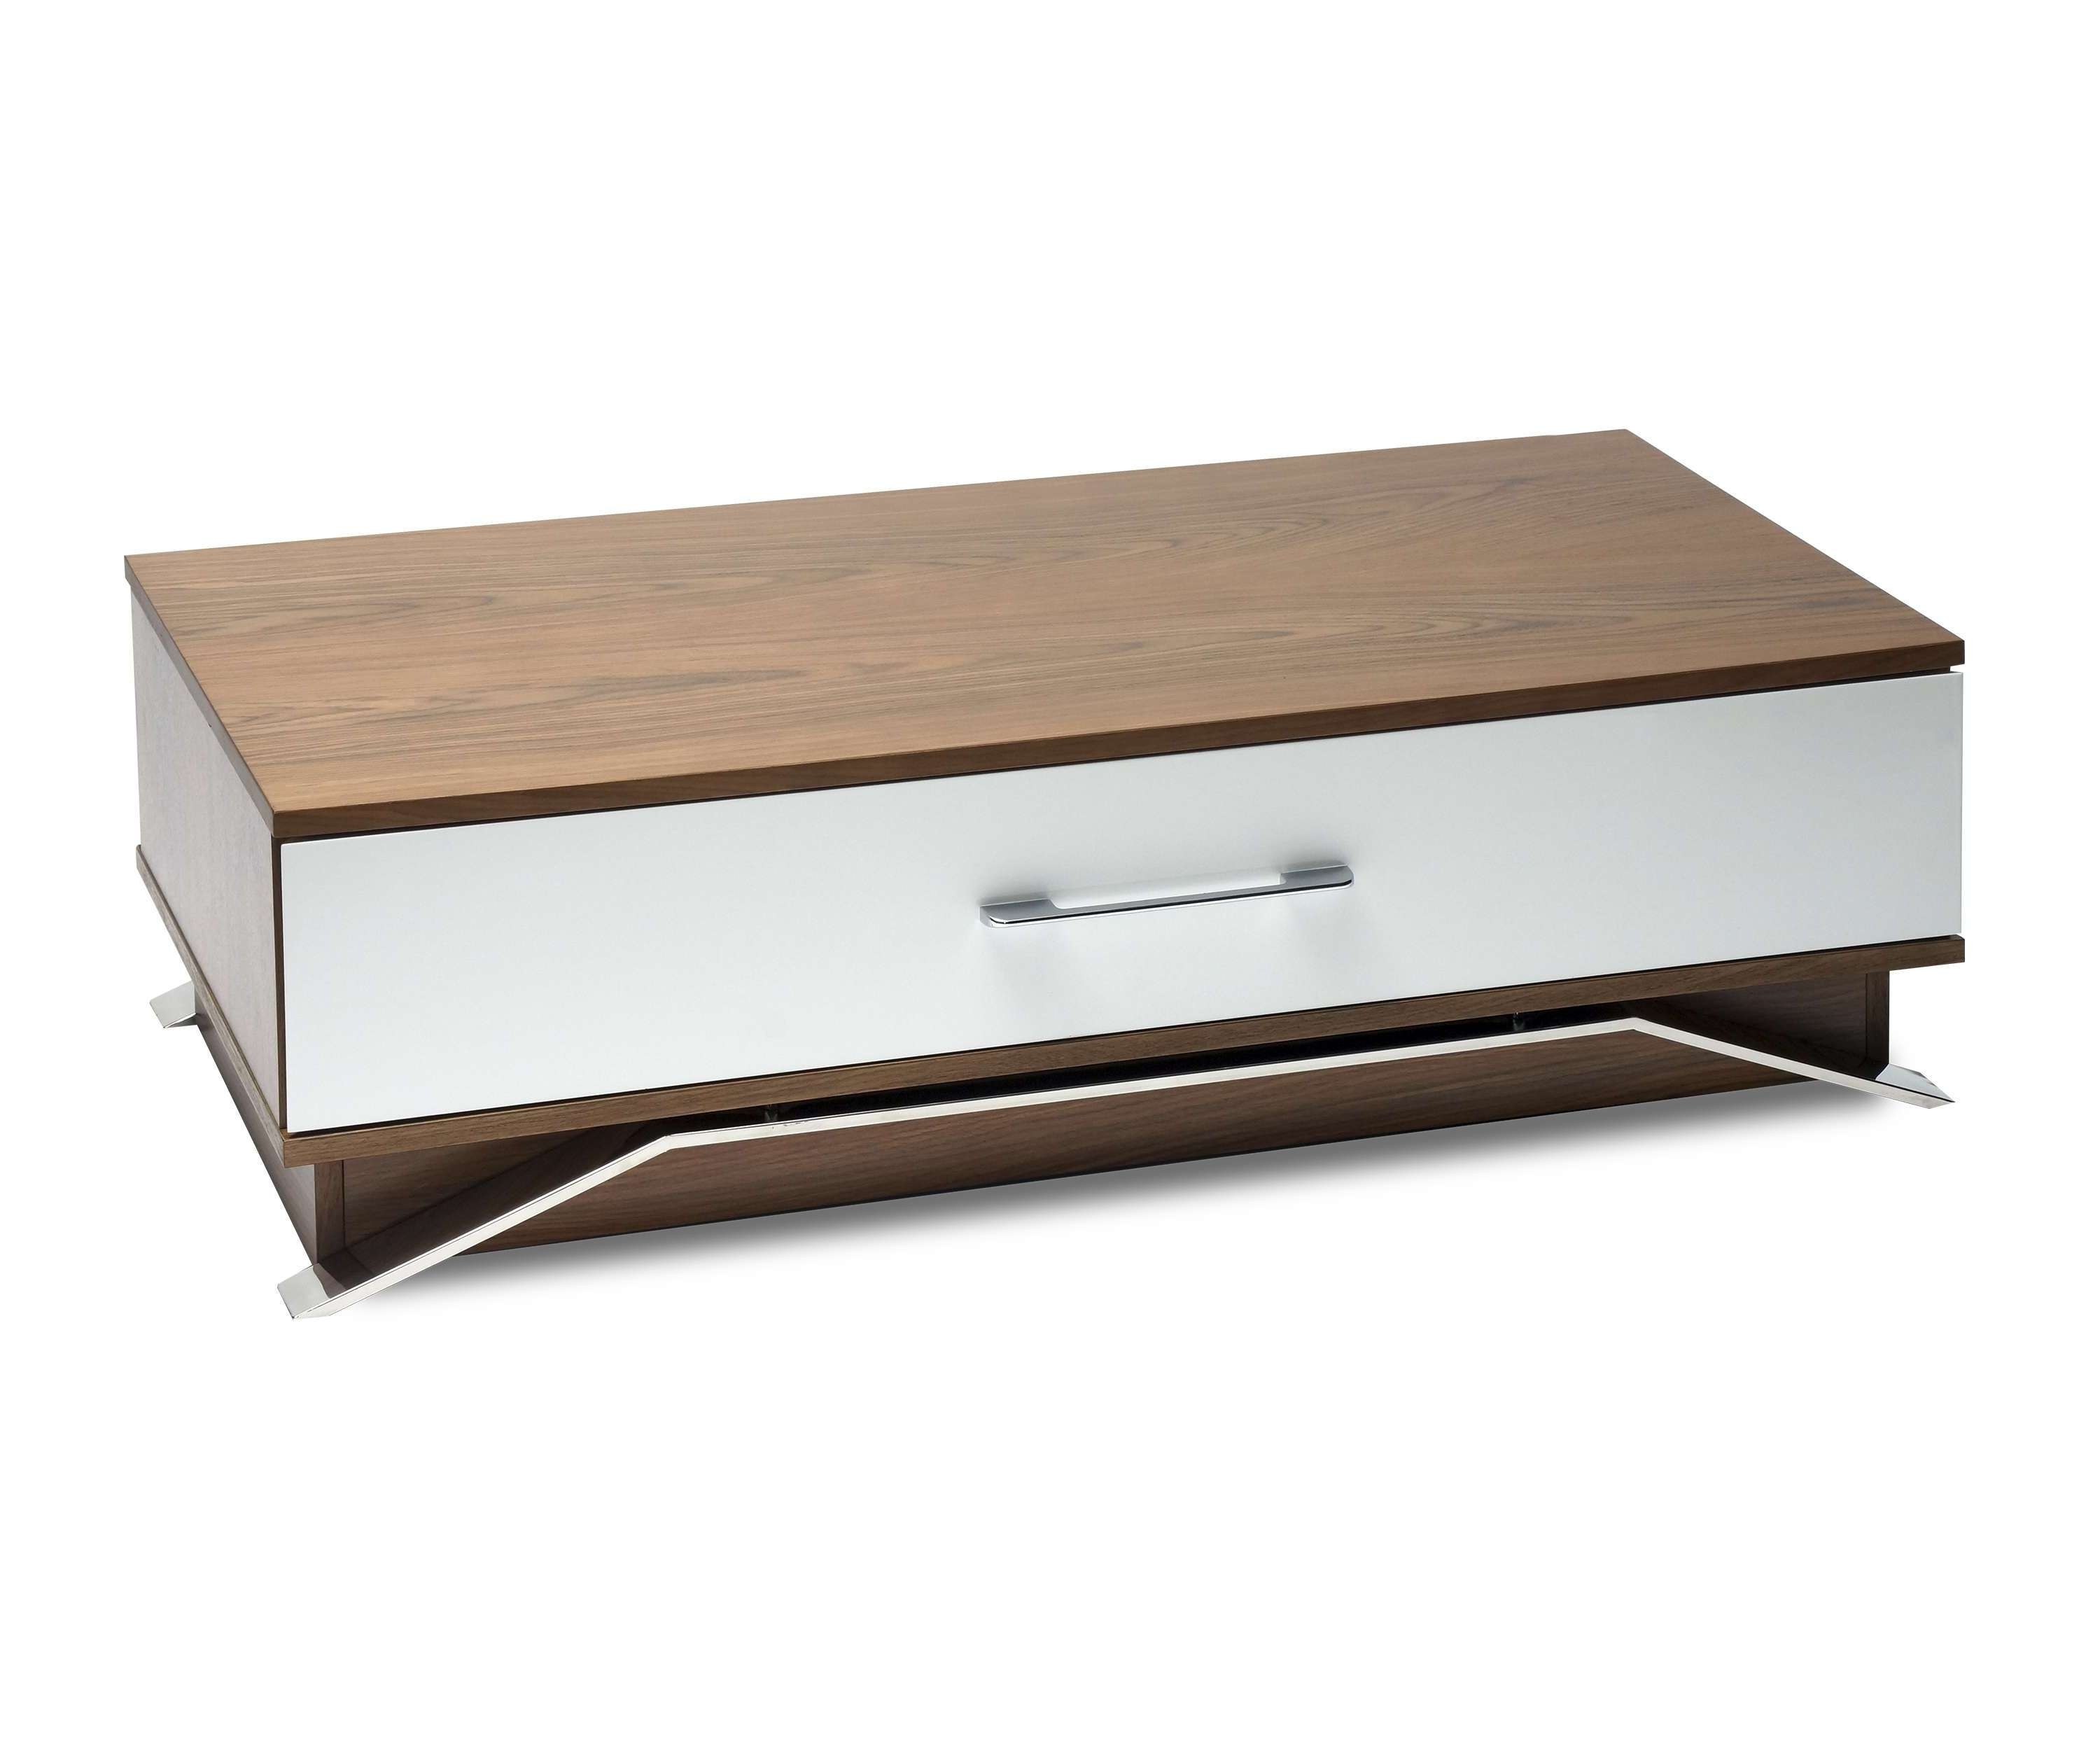 Best And Newest Bordeaux Coffee Tables Within Bordeaux Coffee Table (View 4 of 20)